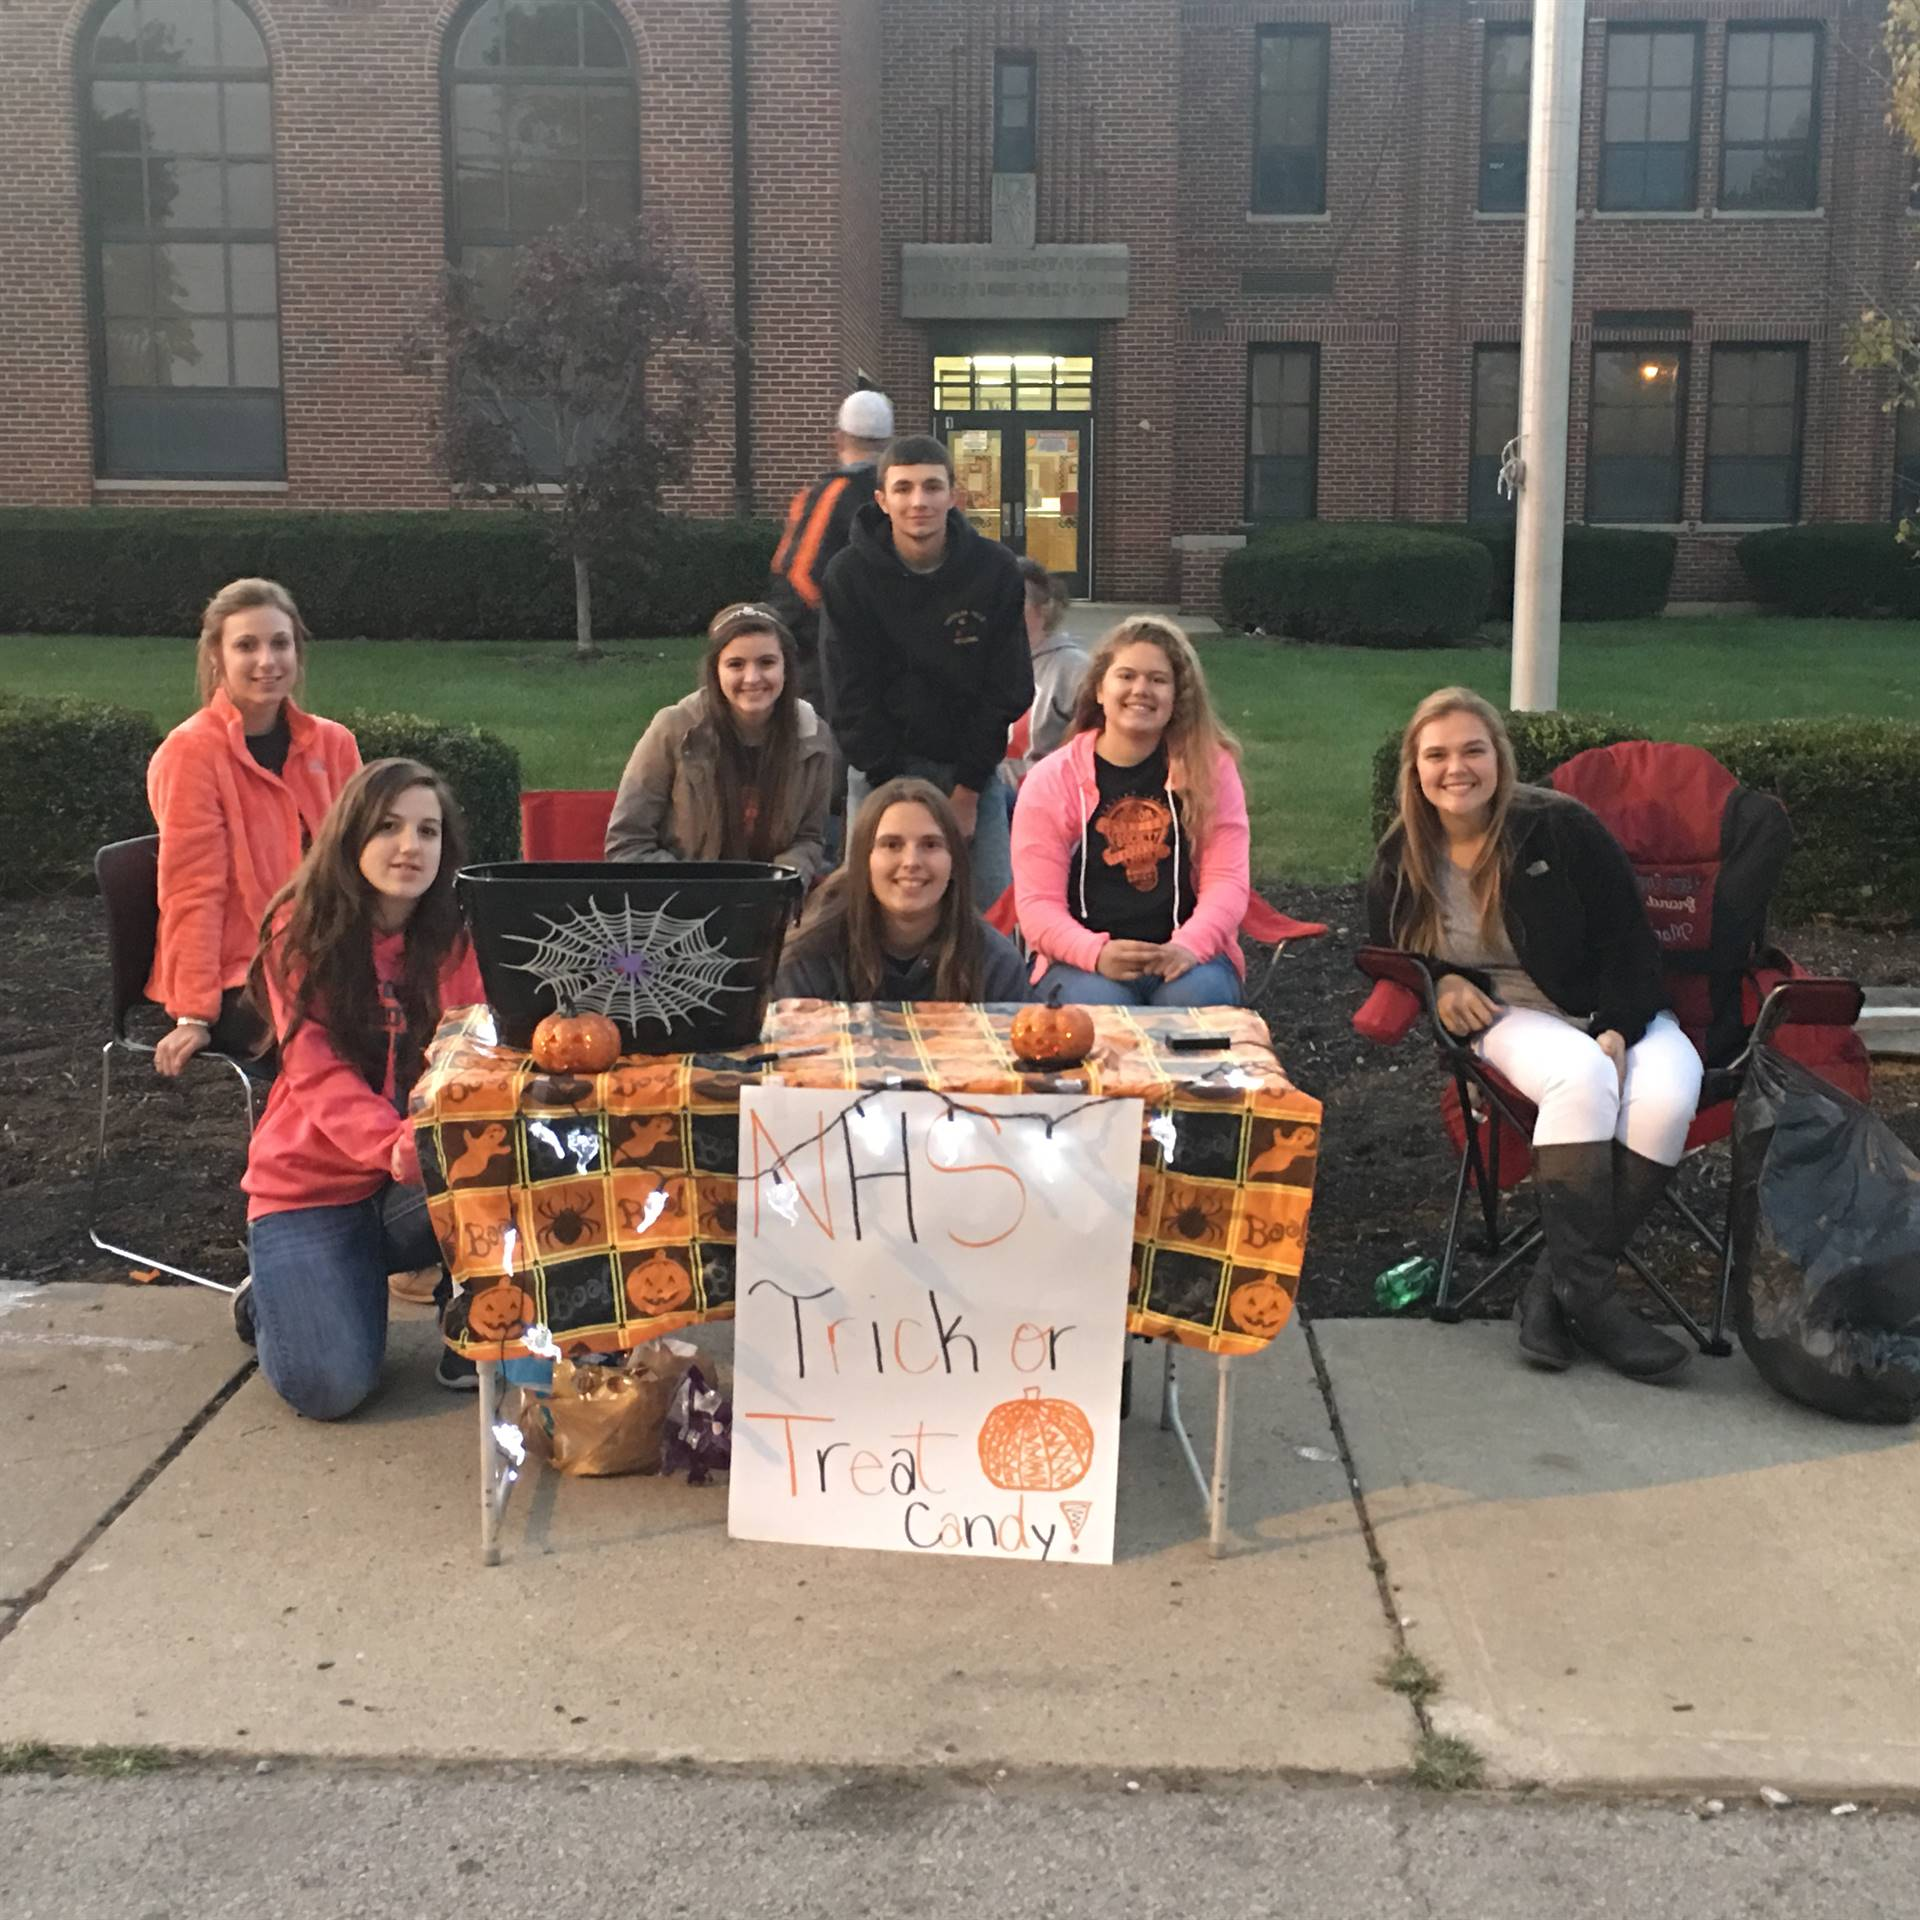 NHS handing out candy during Trick or Treat